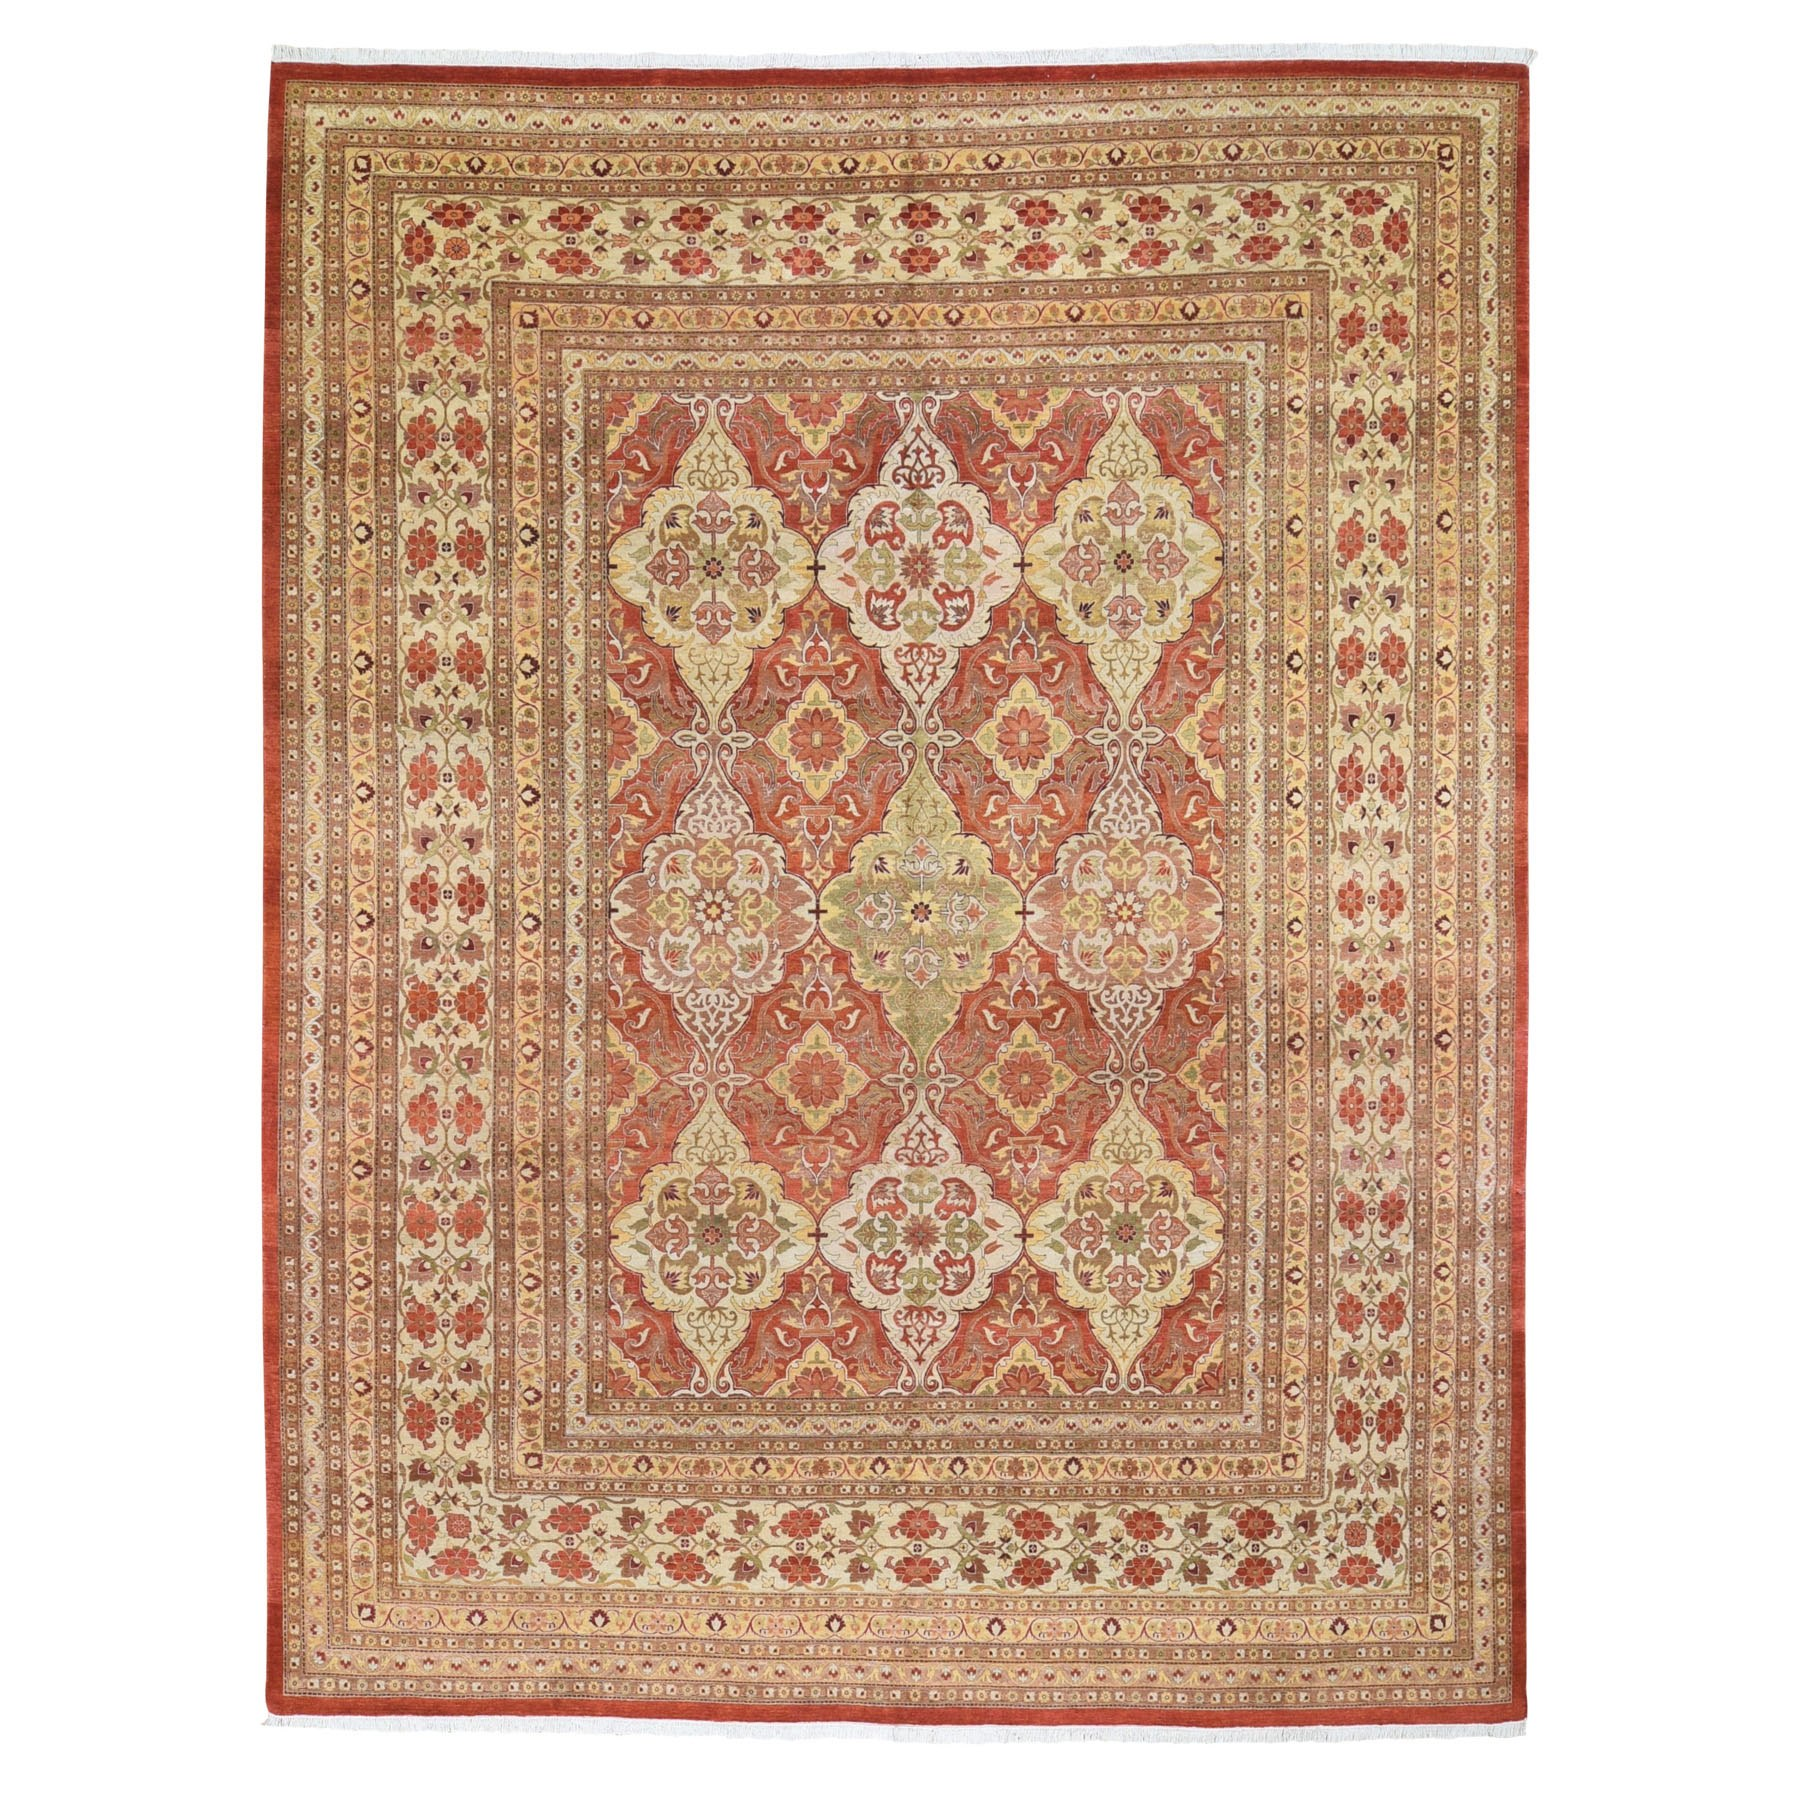 "9'2""X11'10"" Red New Pak Persian 300 Kpsi Vegetable Dyes Hand Knotted Pure Wool Oriental Rug moad96ad"